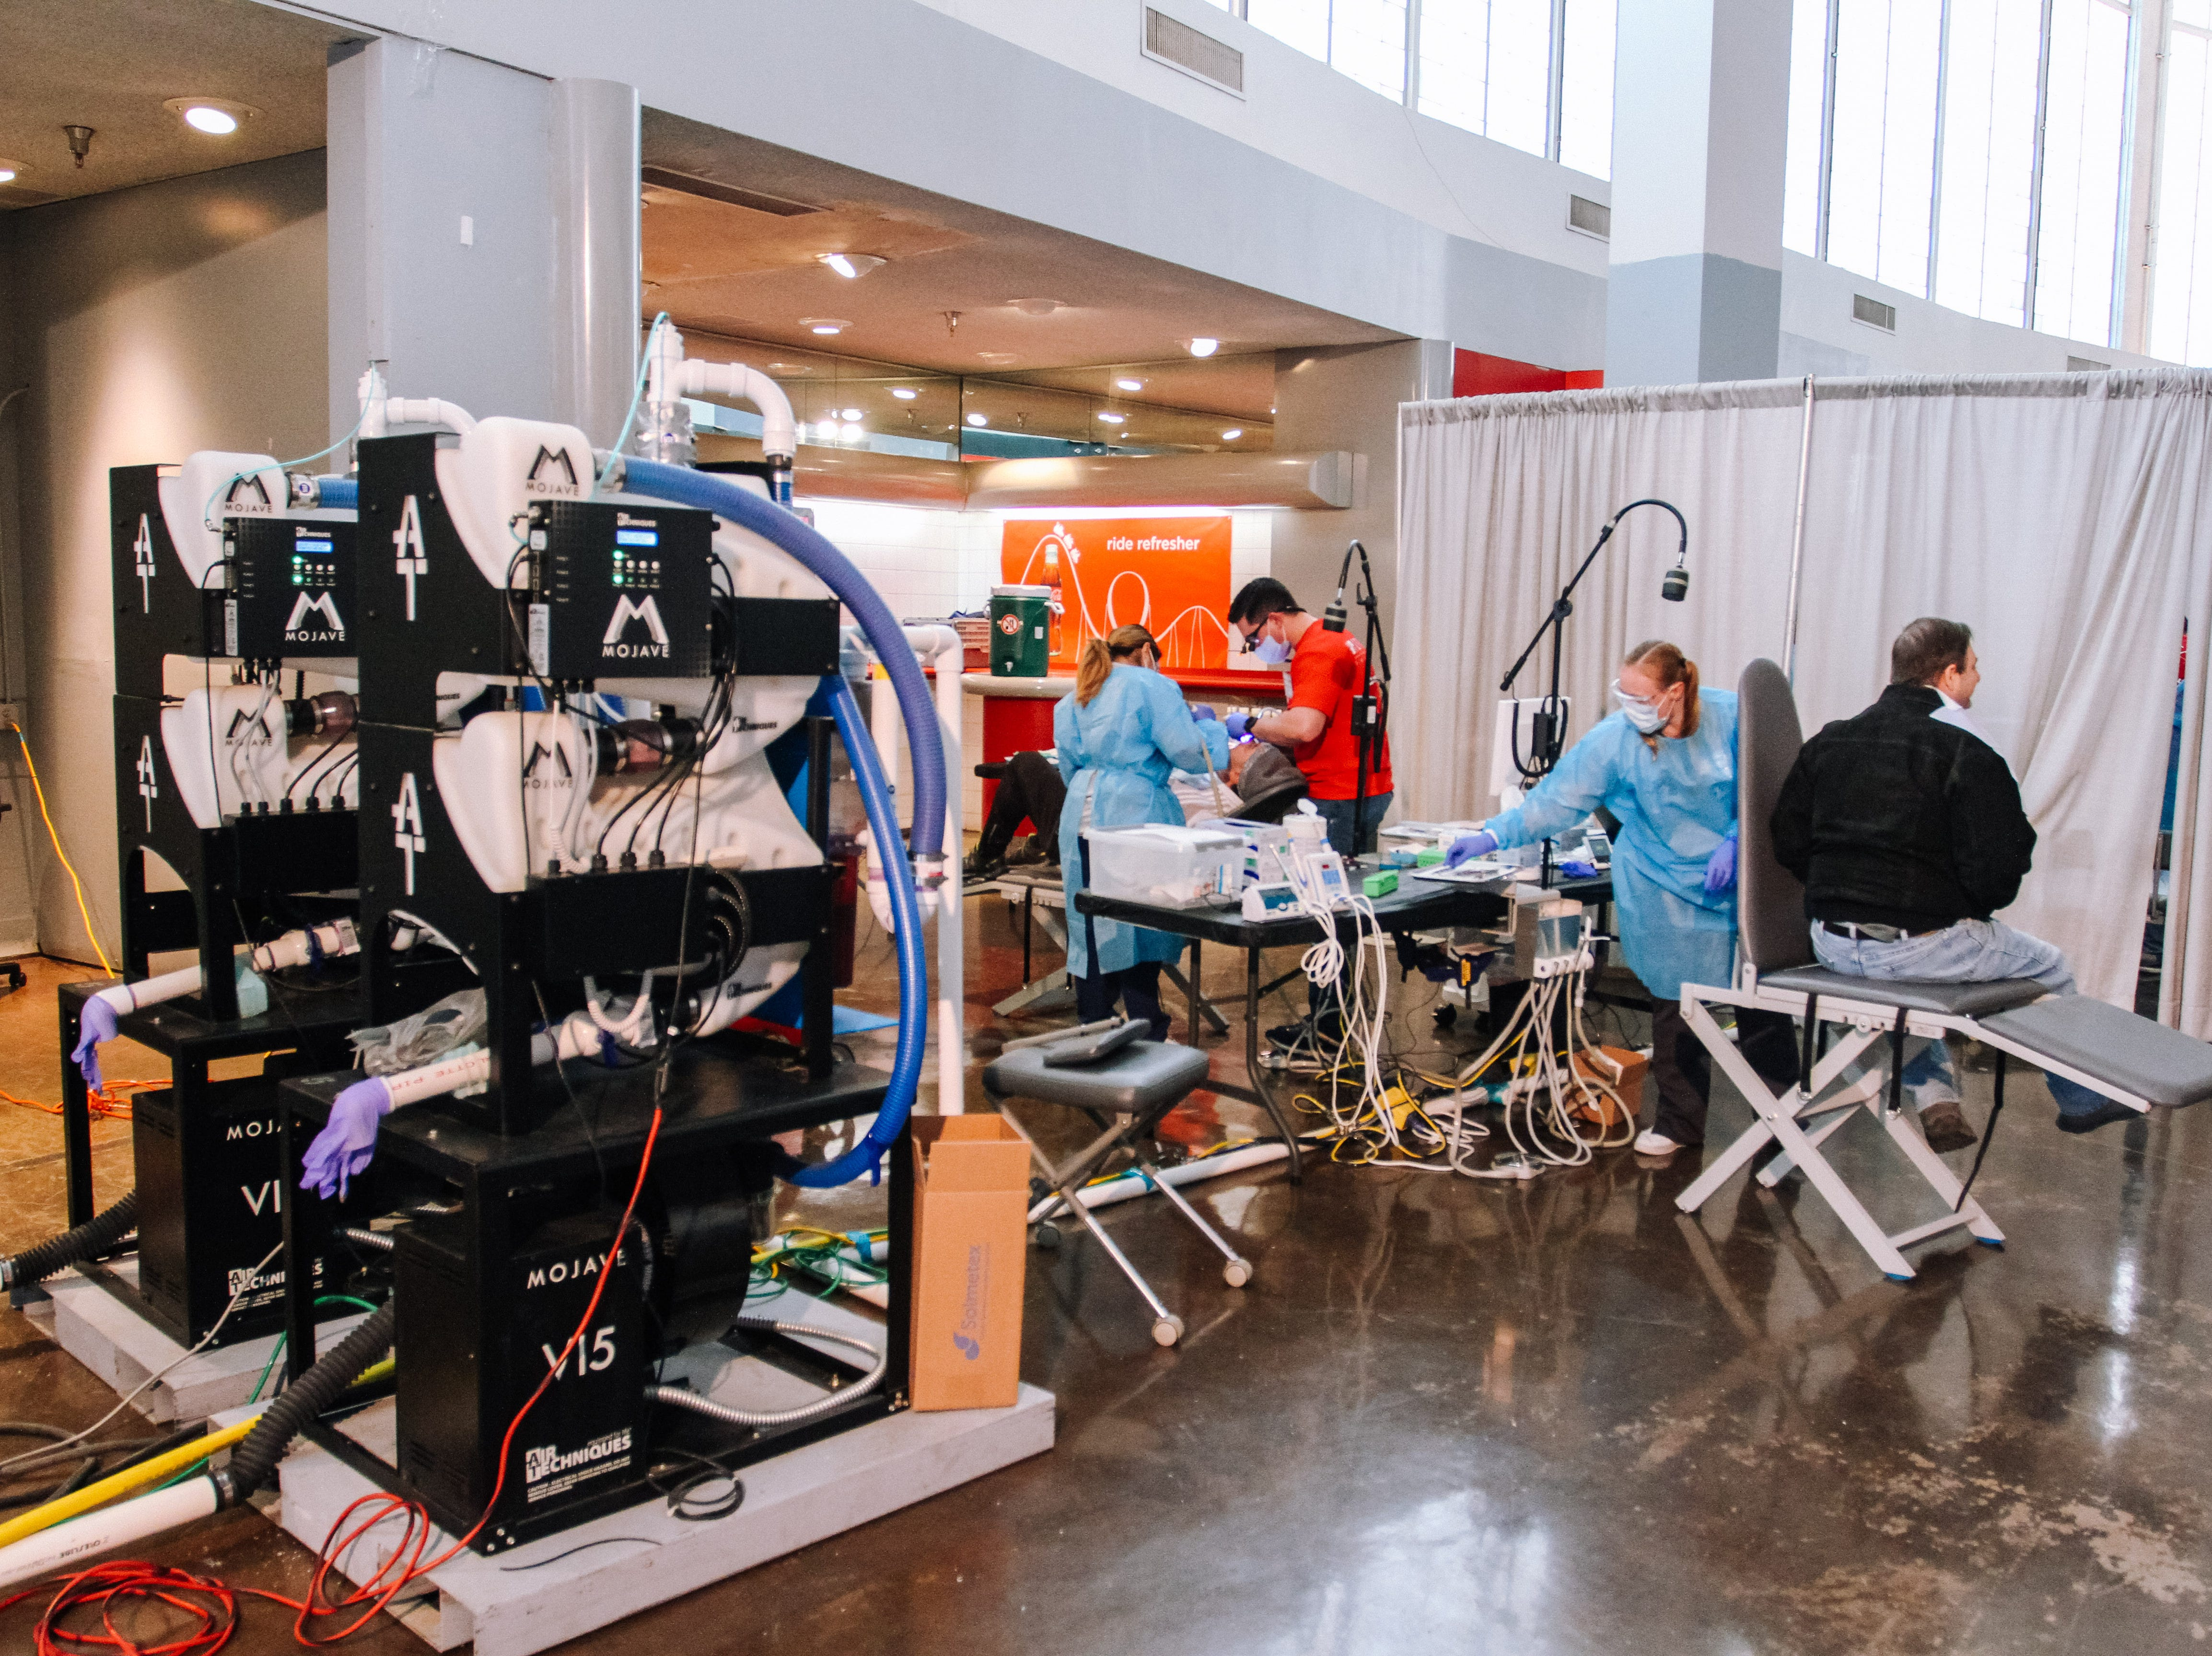 Veterans have dental work done at the 2019 Veterans StandDown at the Arizona State Fairgrounds in Phoenixon Jan. 25, 2019.